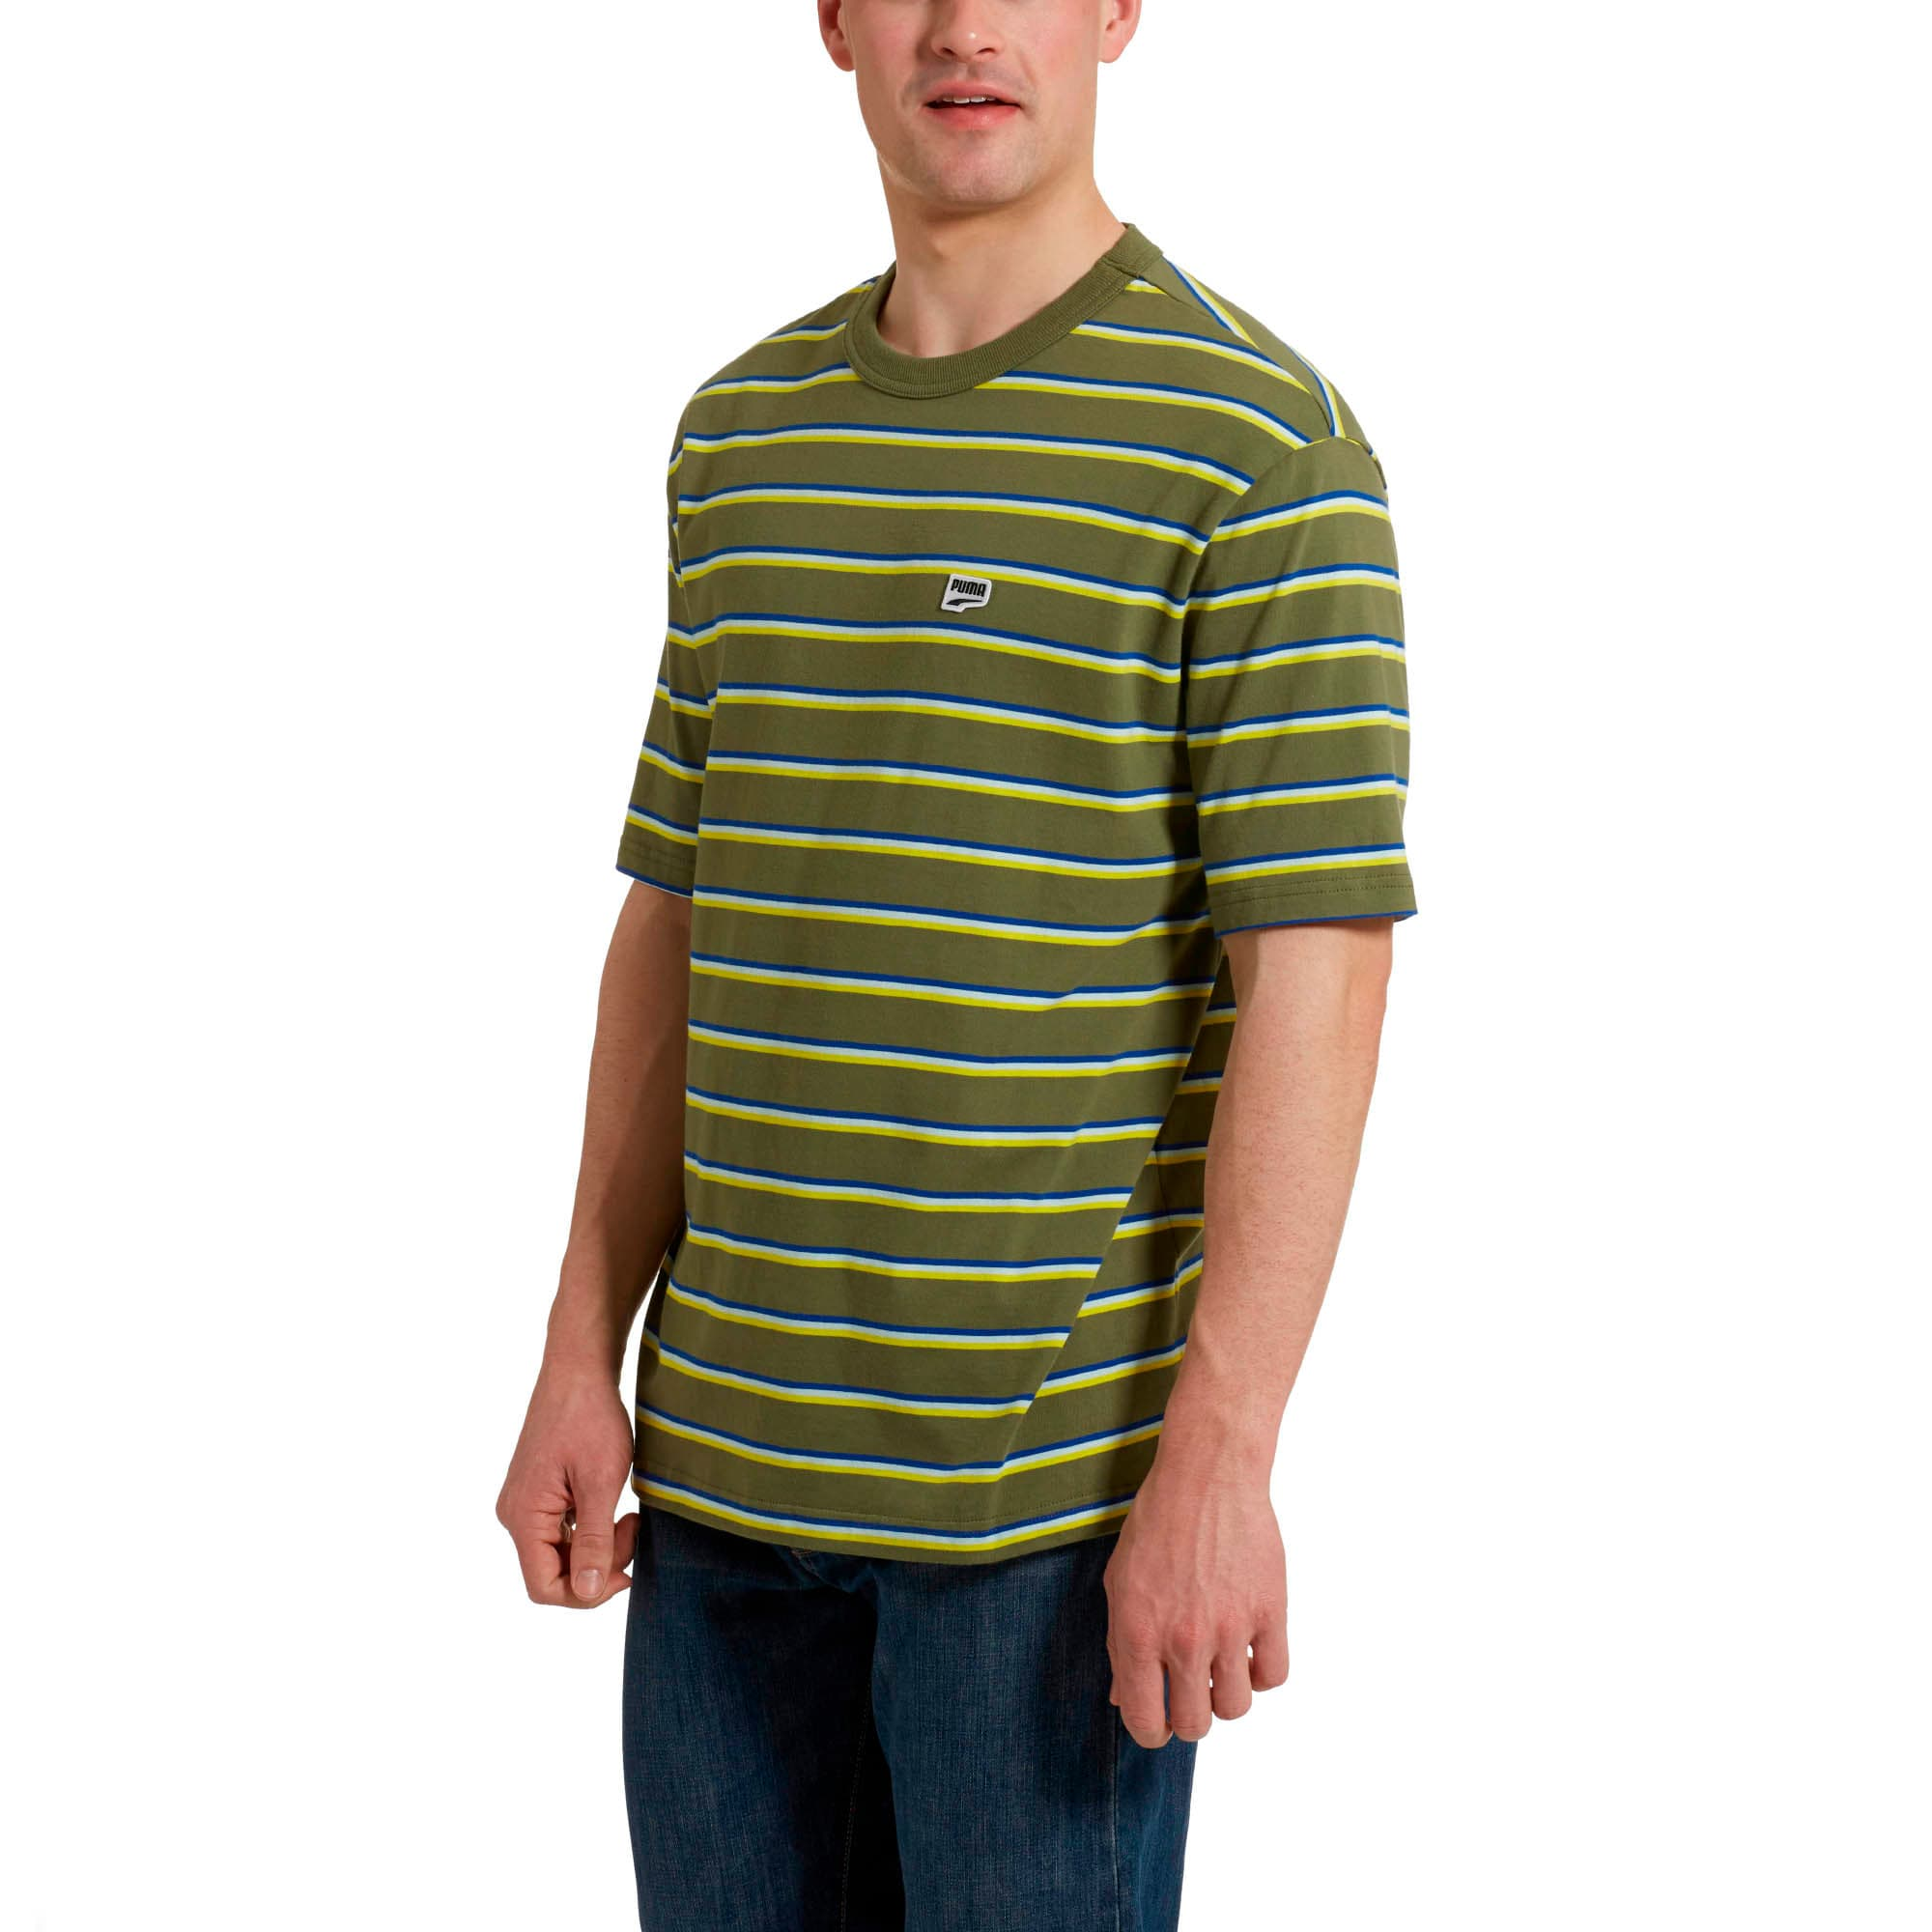 Thumbnail 2 of Downtown Striped Men's Tee, Olivine, medium